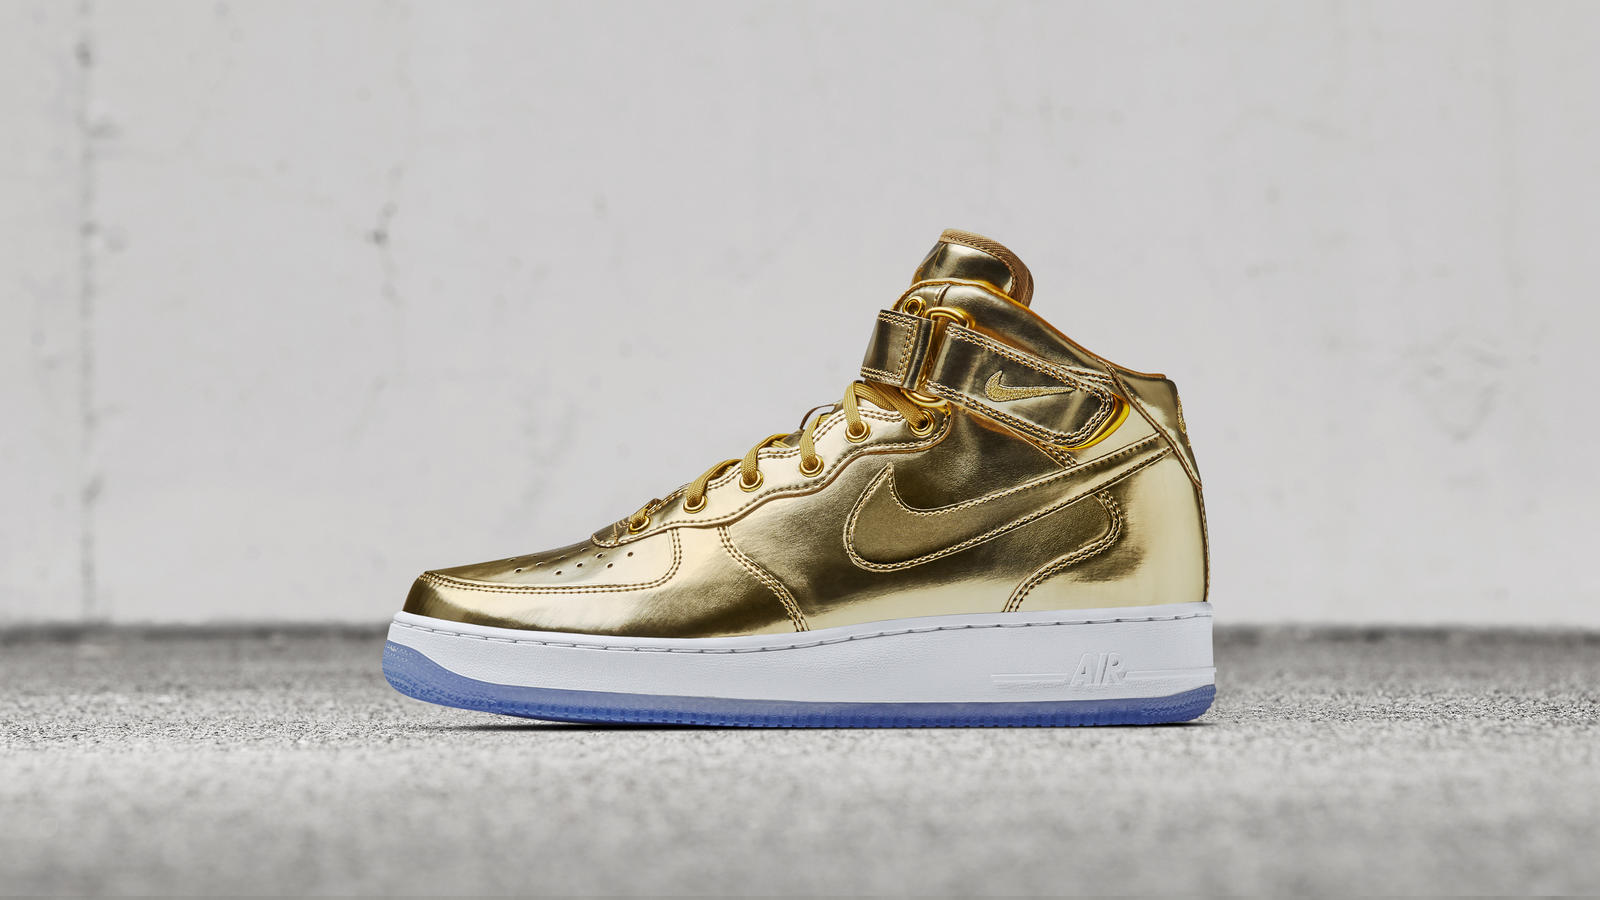 6bfdeaa762cb Gold Nike Sneakers   Buy Nike Sneakers   Shoes